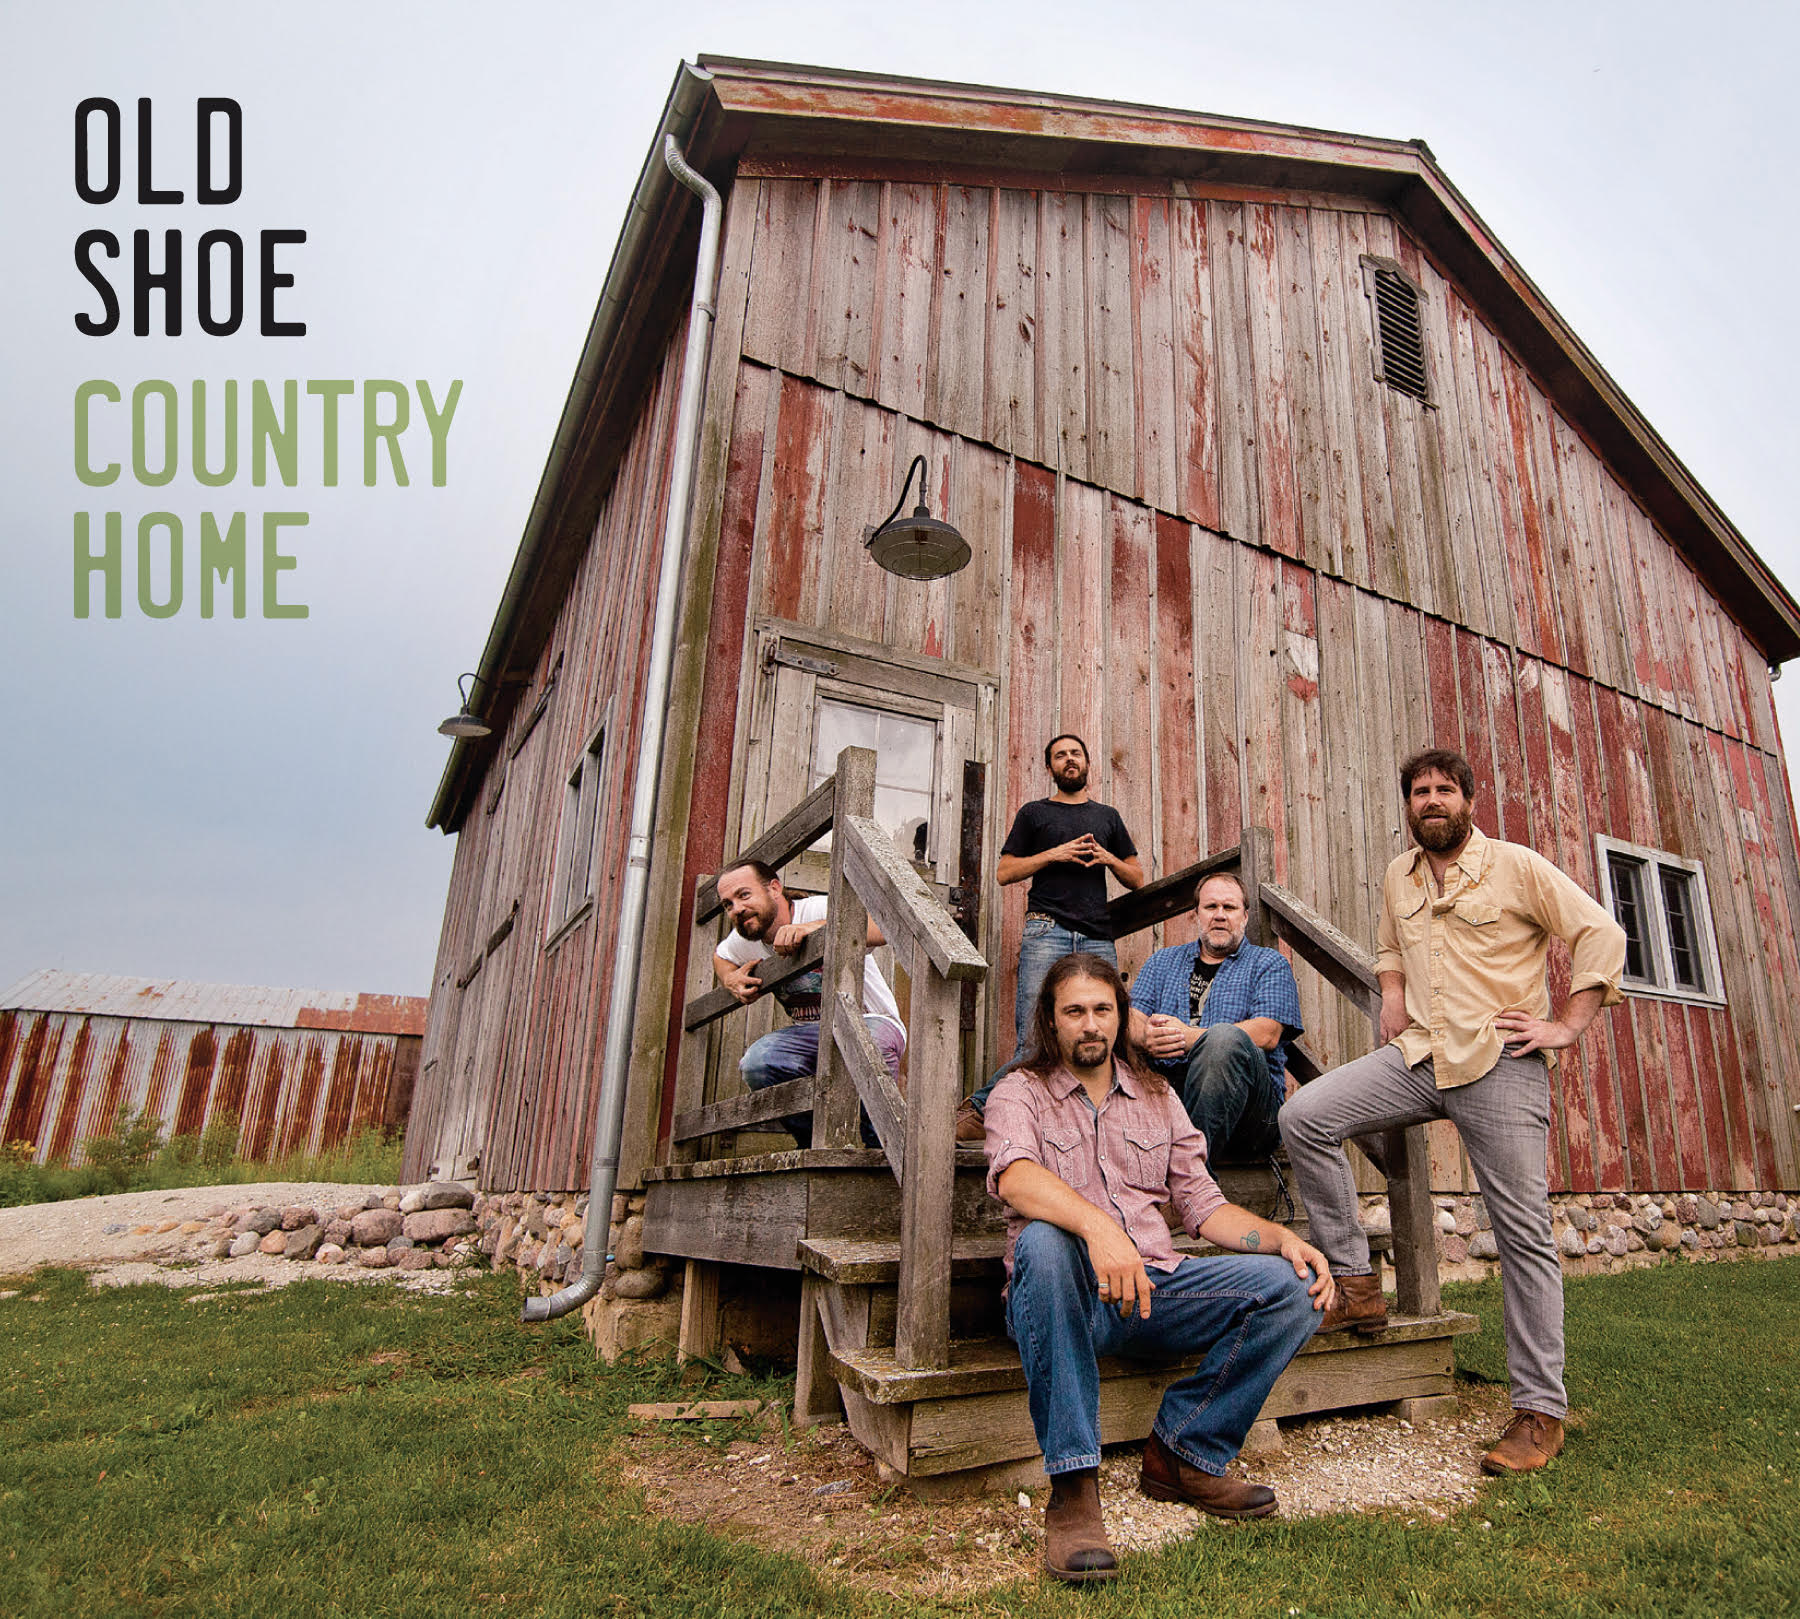 Old Shoe announces album 'Country Home'